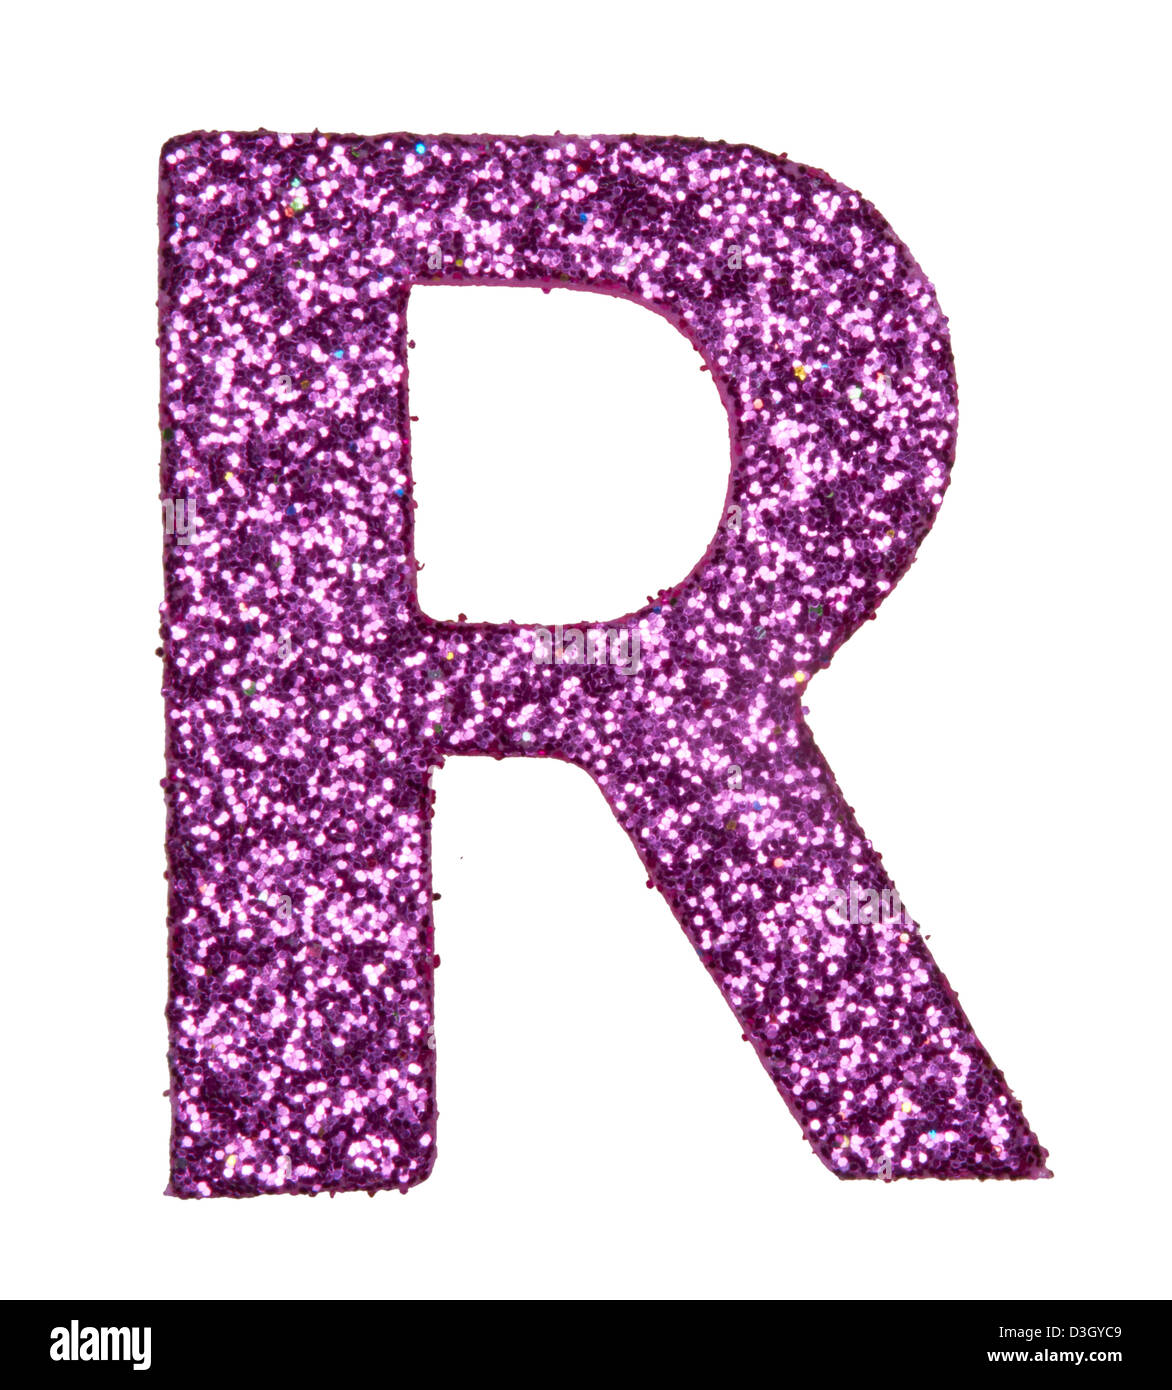 letter of the alphabet R - Stock Image